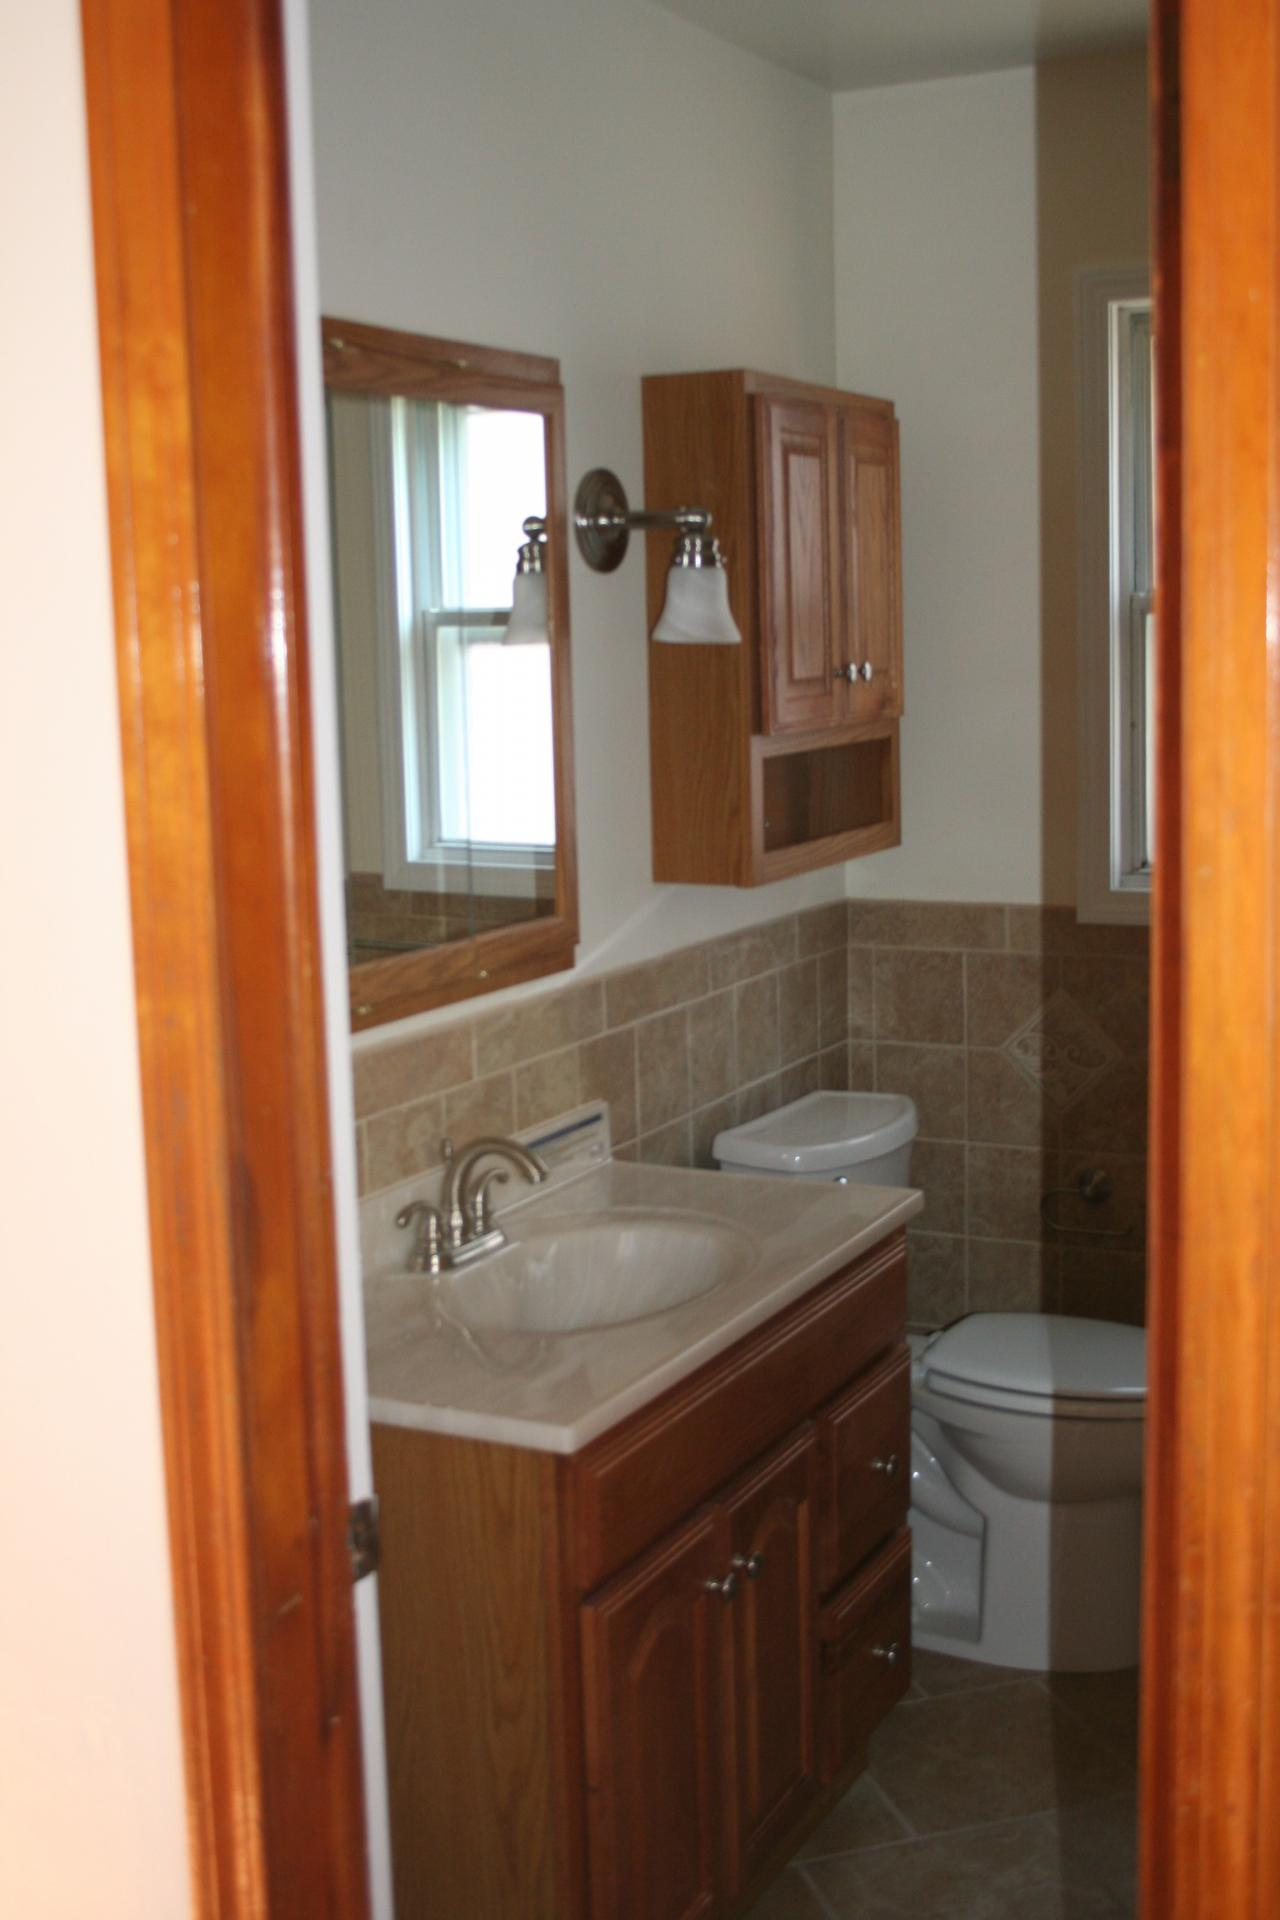 Nest Homes Construction Bathroom Renovation And Remodeling - Bathroom remodeling cleveland ohio